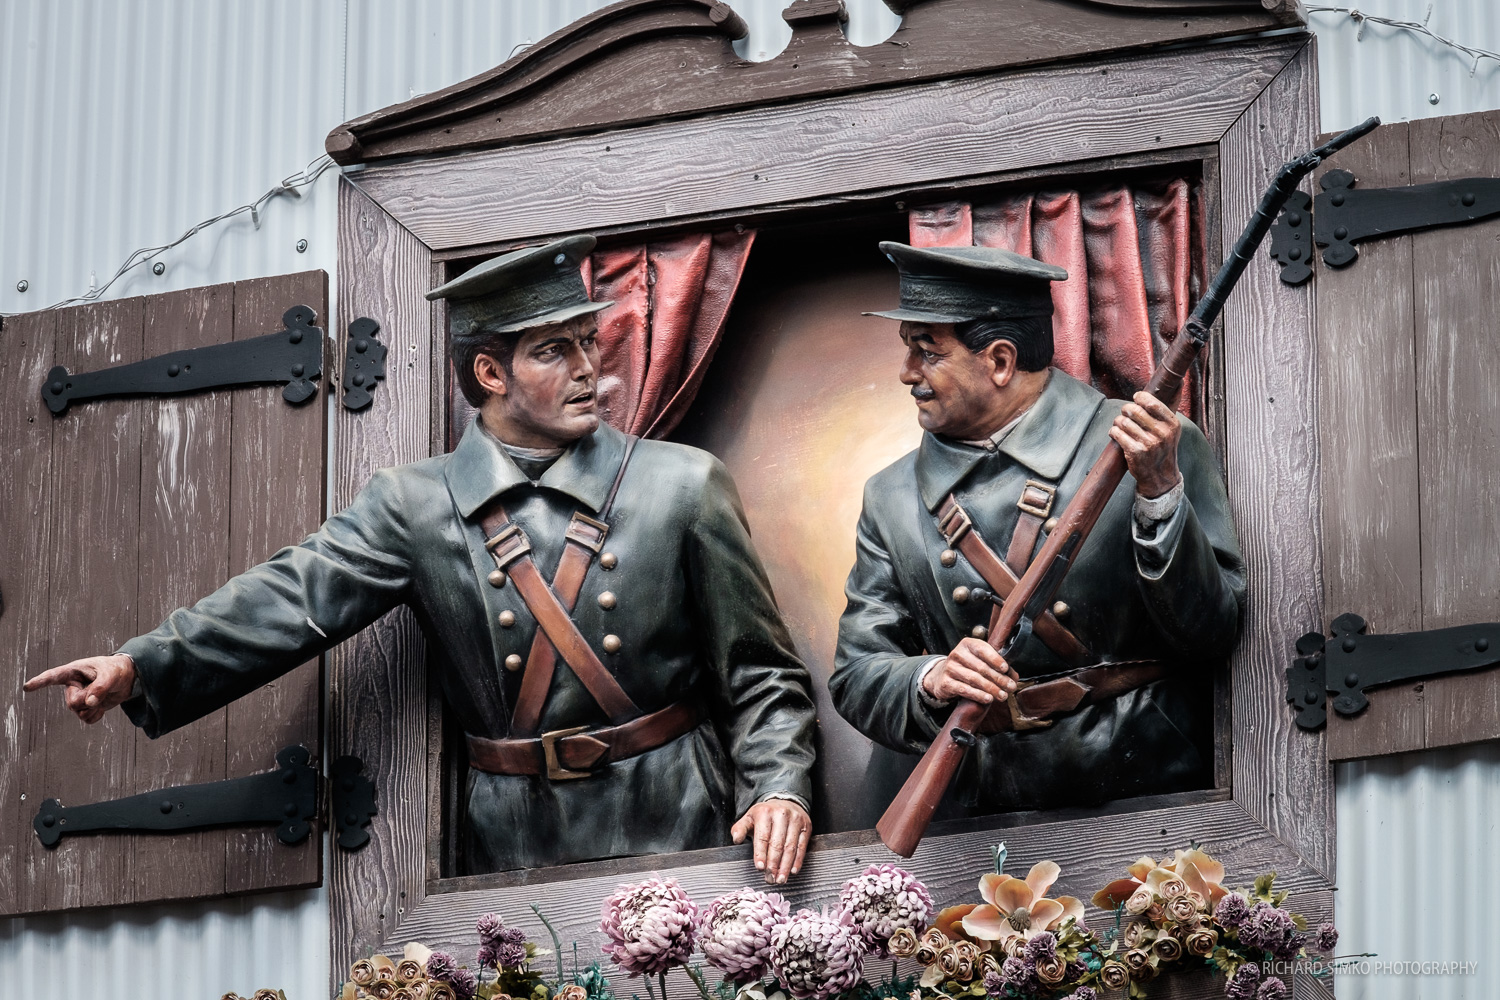 Figurine decorated window at Galeria Tematica. They depict the history of Ushuaia as a penal colony with major prison.